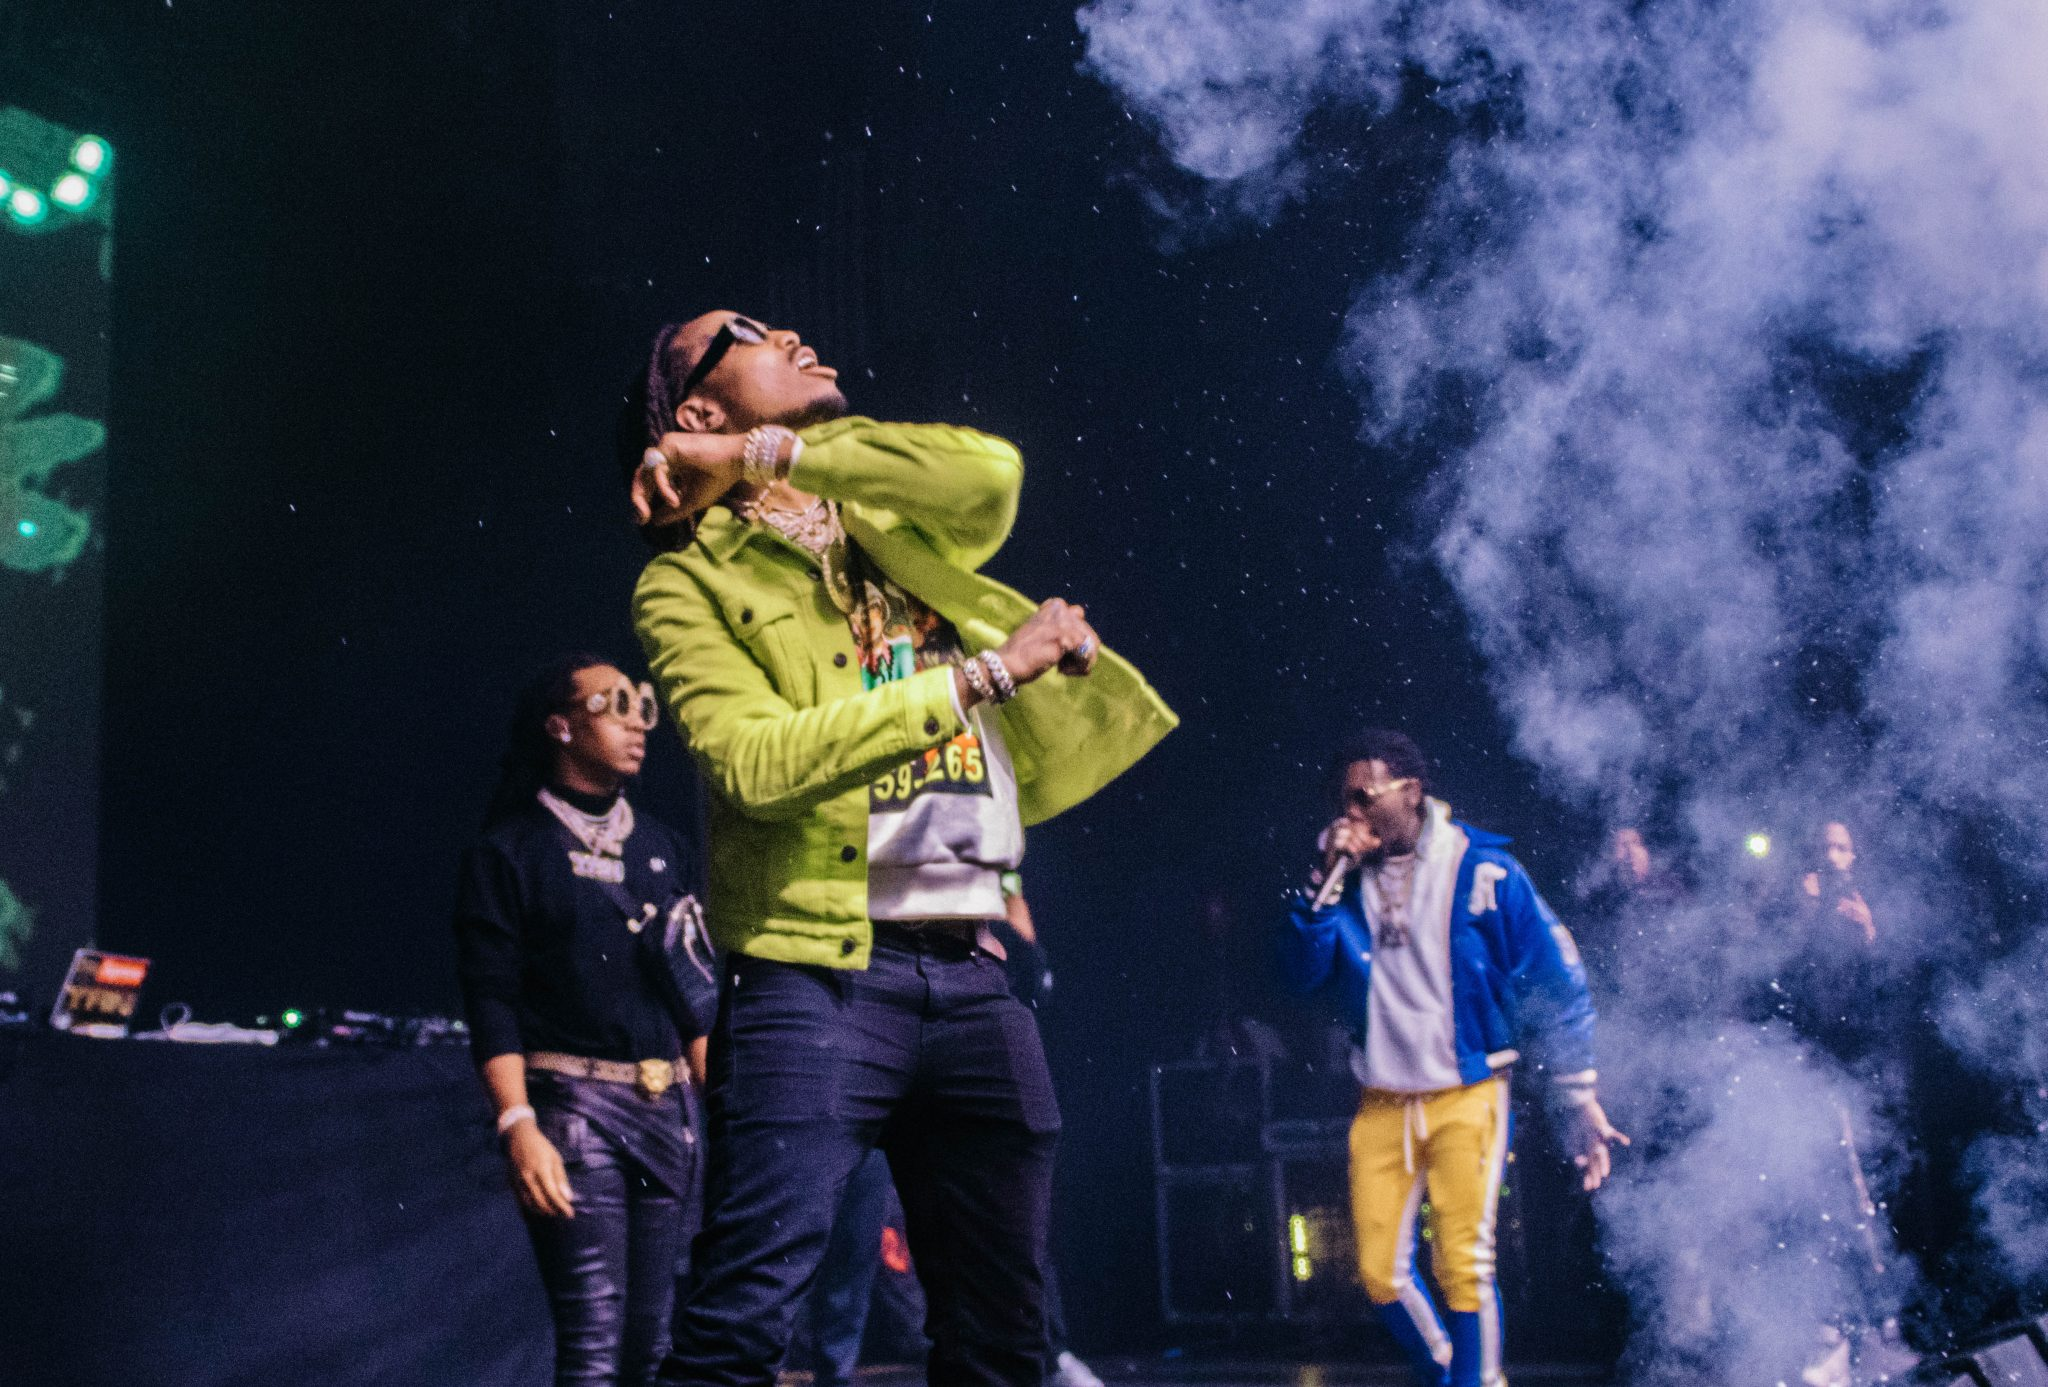 LIVE REVIEW: Chicago turned up for Migos and Lil Yachty